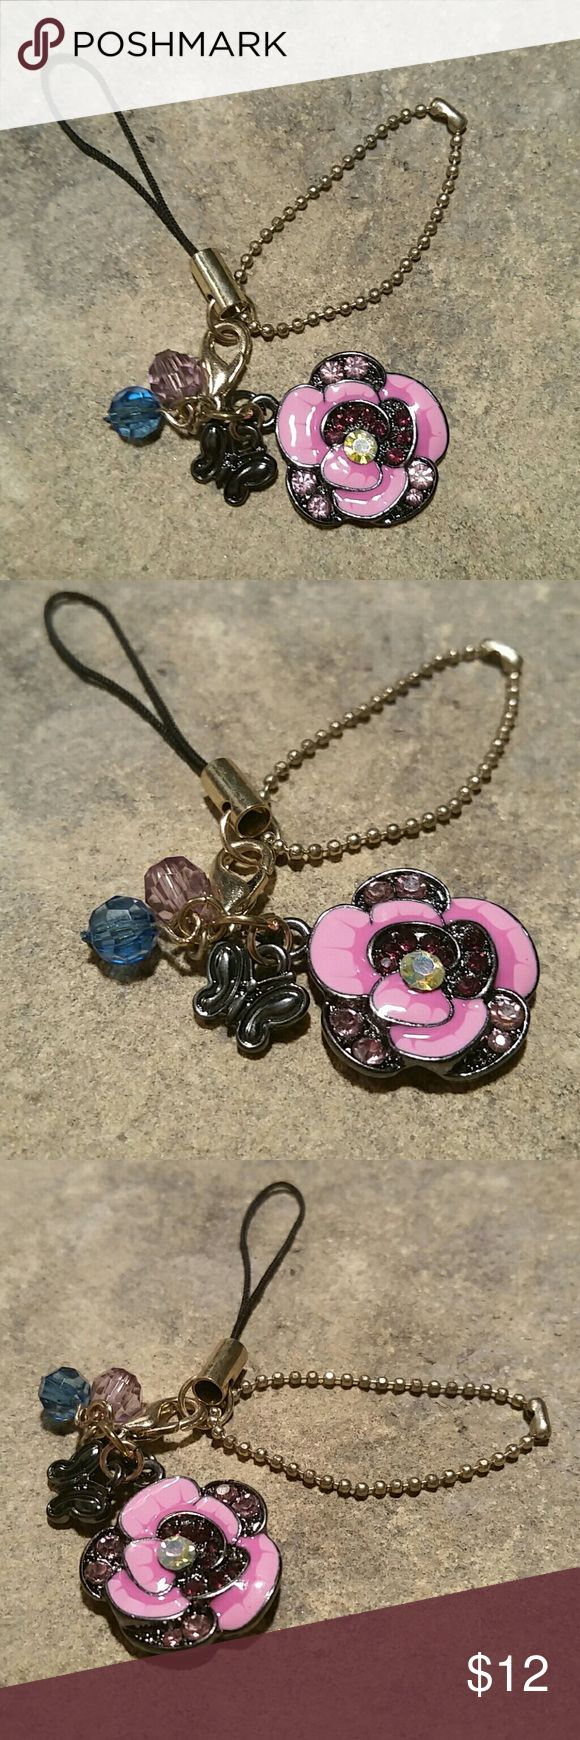 "ANNA SUI Enameled Flower Purse Charm / Keychain New, never used, retired vintage design, Anna Sui enameled flower purse charm or key chain. Pink flower accented by light and dark pink & aurora borealis (rainbow sheen) crystal rhinestones, metal butterfly,  pink and blue crystal beads. Anna Sui stamped on back. Feminine, sophisticated & very stunning for sure, as Anna Sui designs are! Flower .75"", total 3"".  Matching jewelry pieces available in my closet!  Thank you for visiting my closet…"